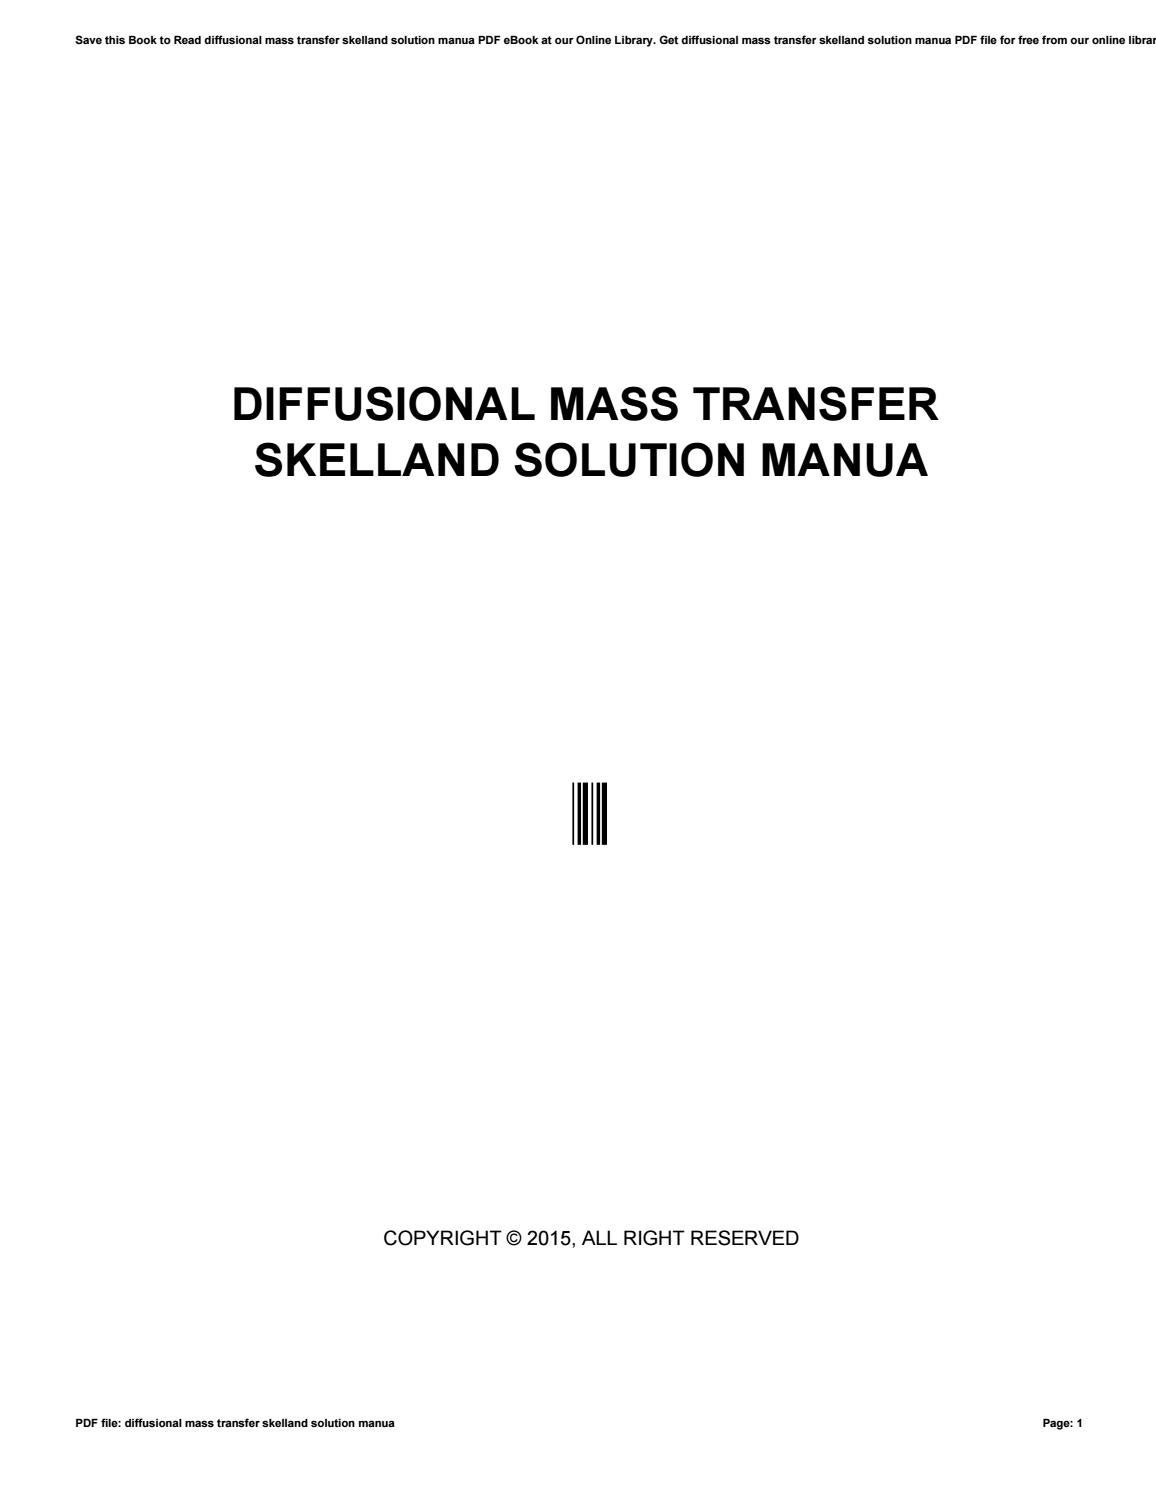 Diffusional mass transfer skelland solution manua by mankyrecords5 - issuu